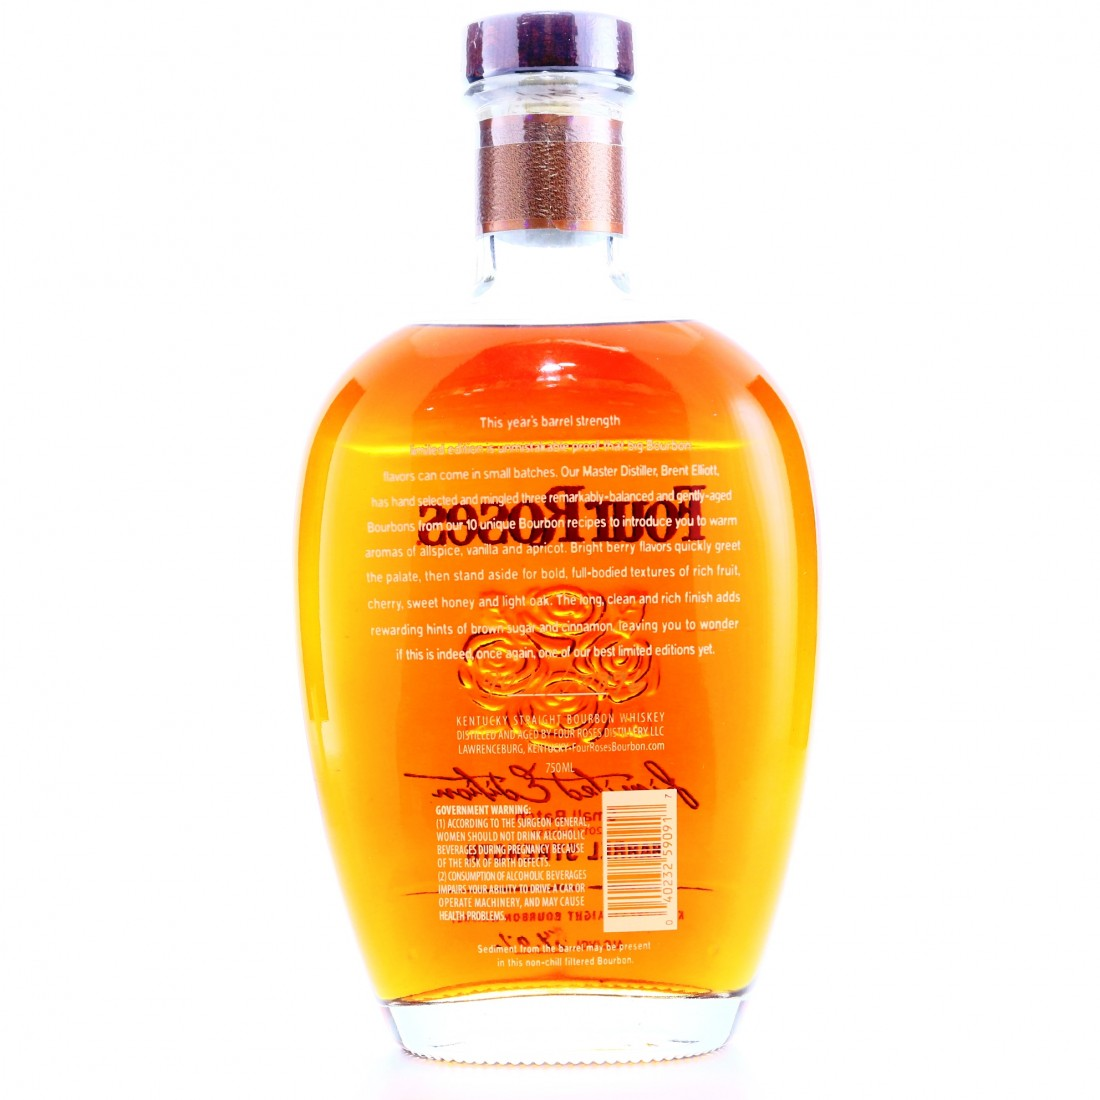 Four Roses Limited Edition 2017 / Barrel Strength